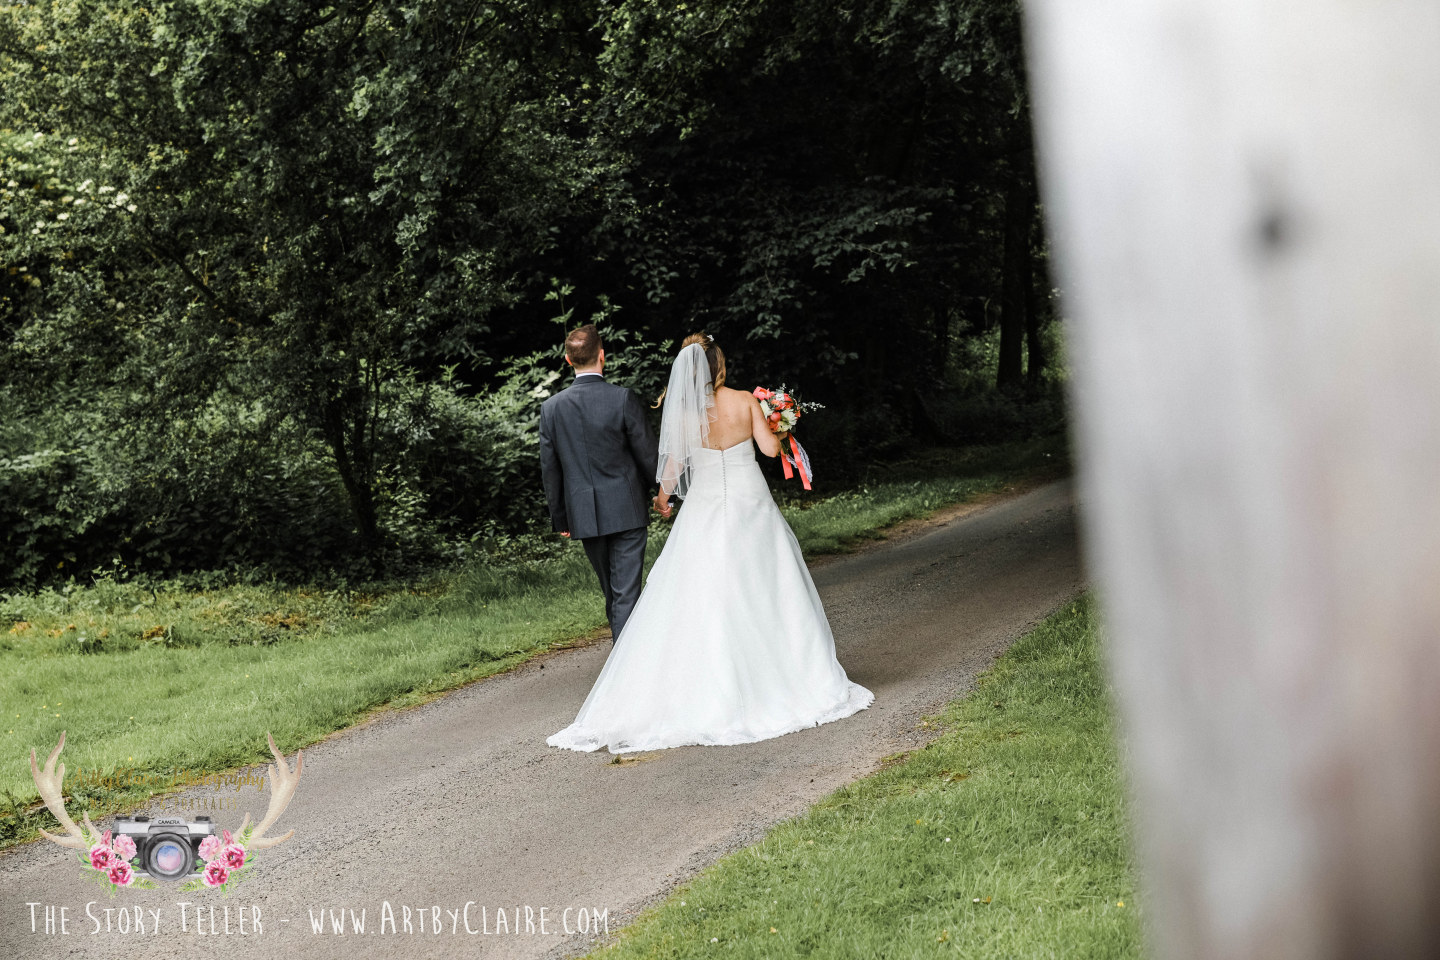 ArtbyClaire Natural & Creative Wedding Photography